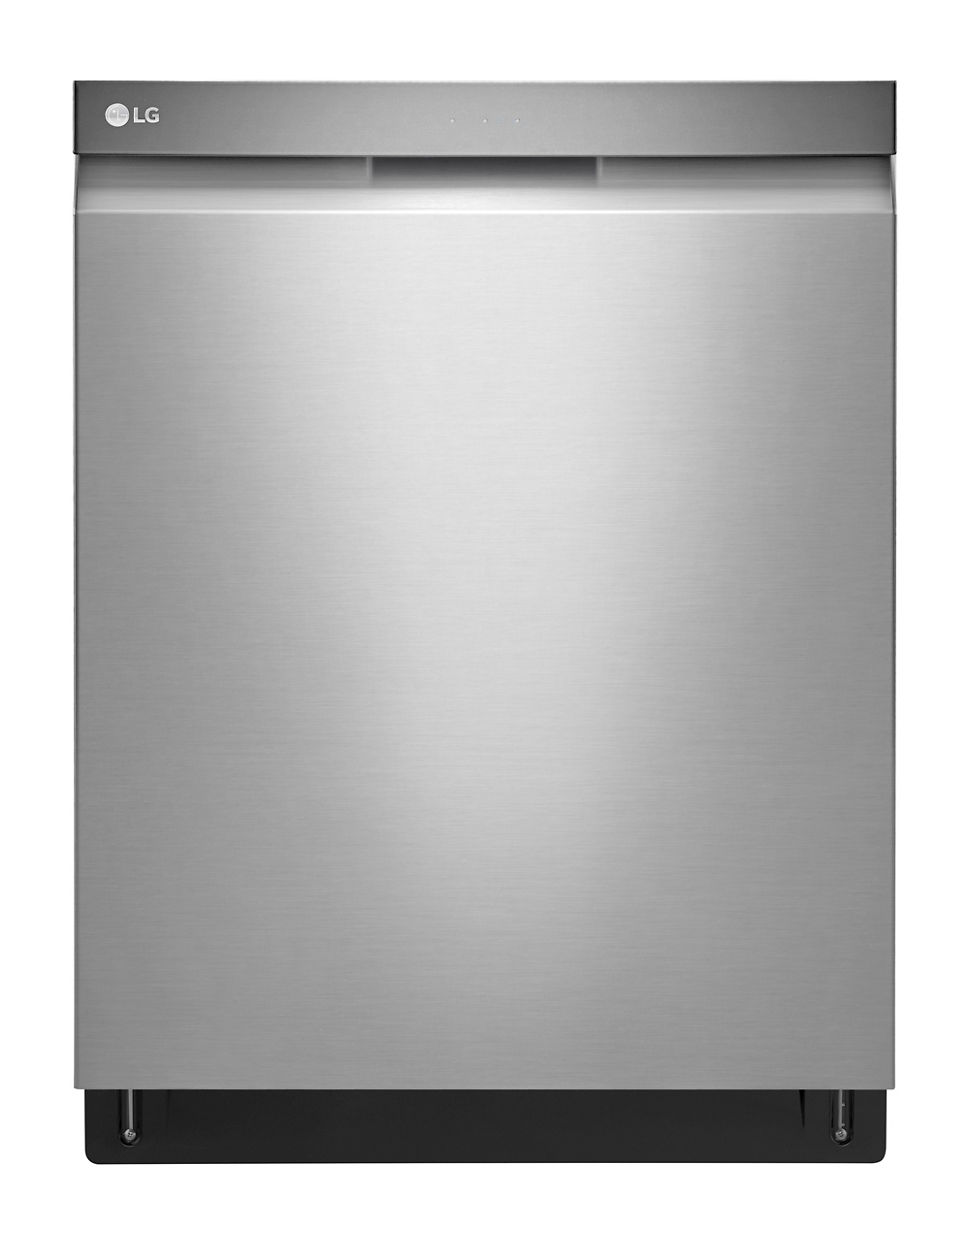 Dishwasher hudsons bay ldp6797st top control with flush handle quadwash and height adjustable 3rd rack stainless steel junglespirit Images